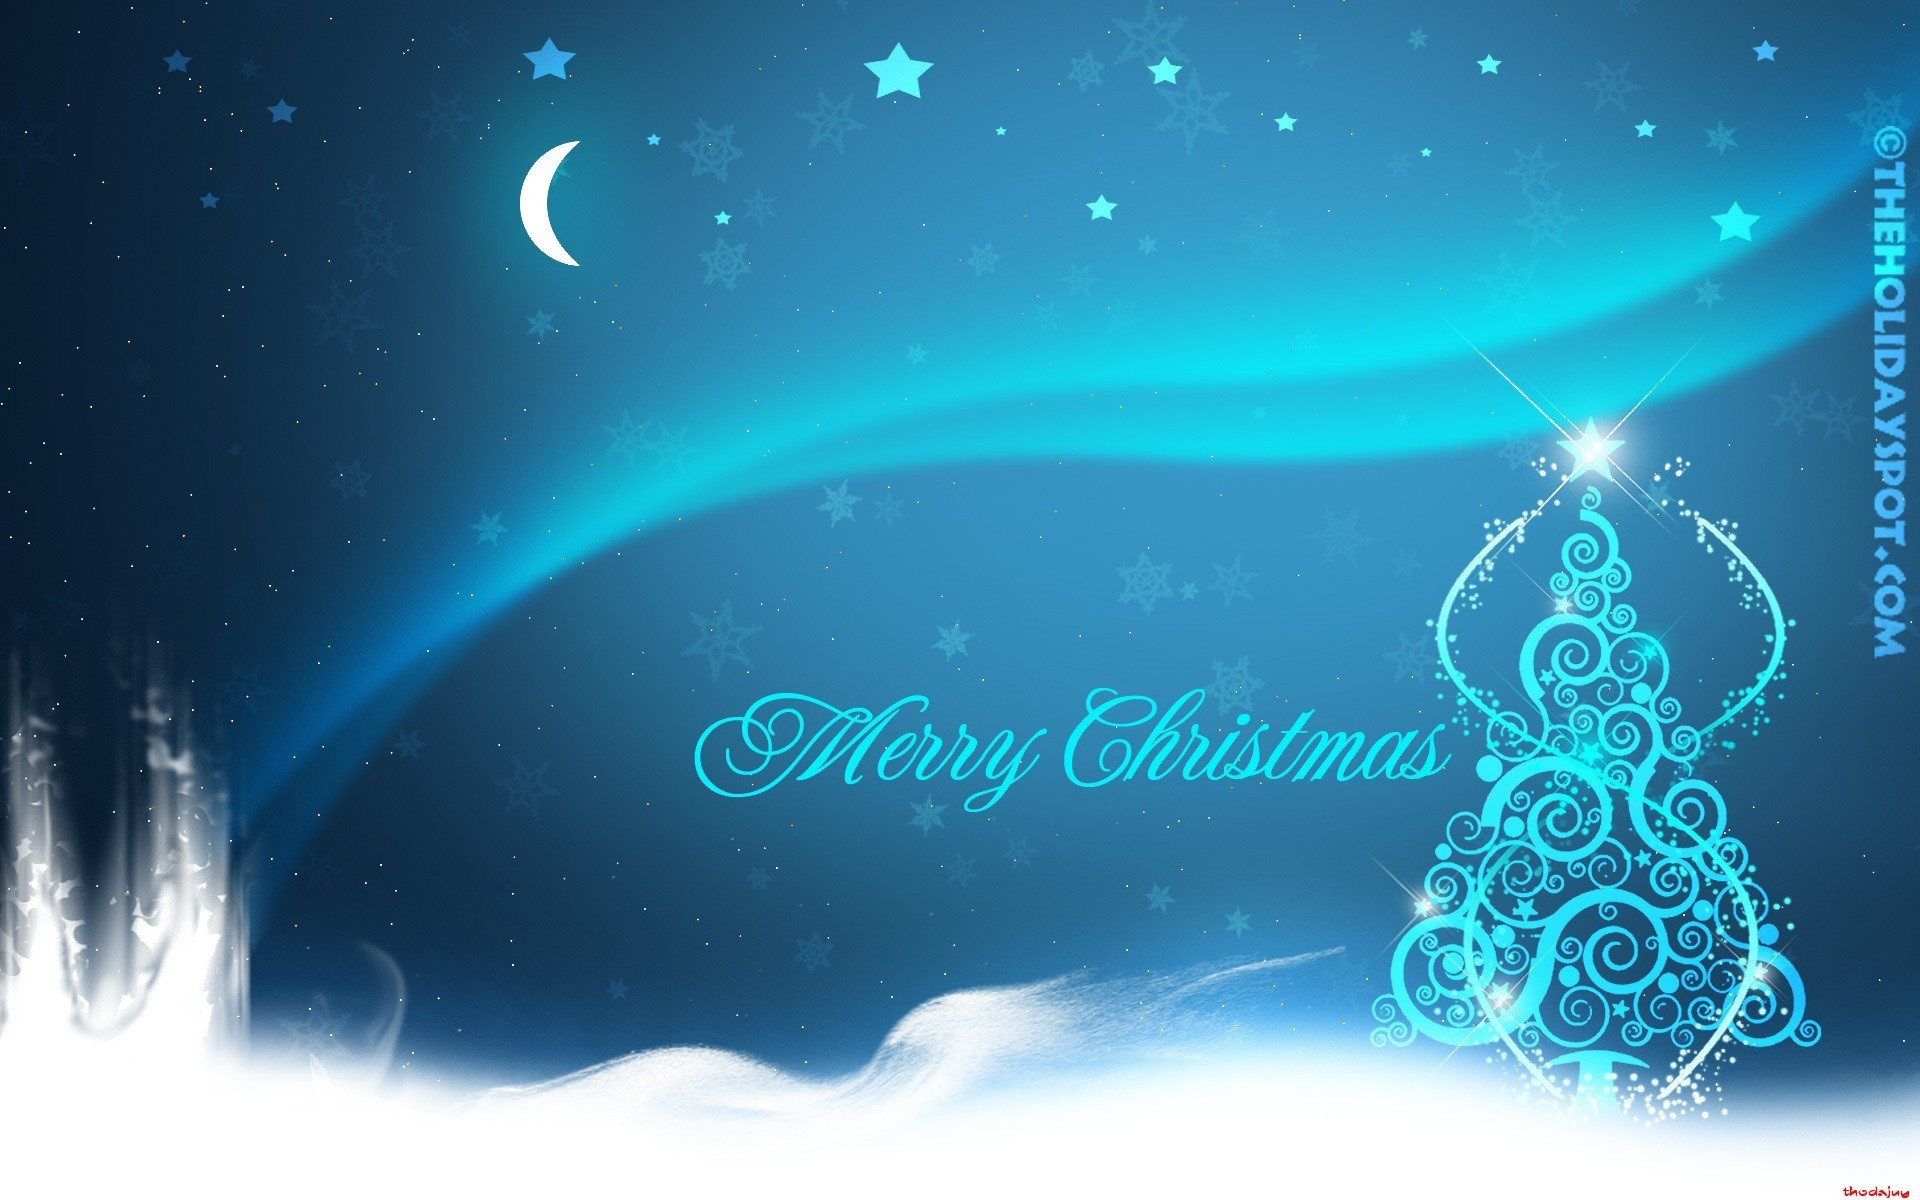 Christmas Background Christian.53 Christian Christmas Backgrounds Download Free Cool